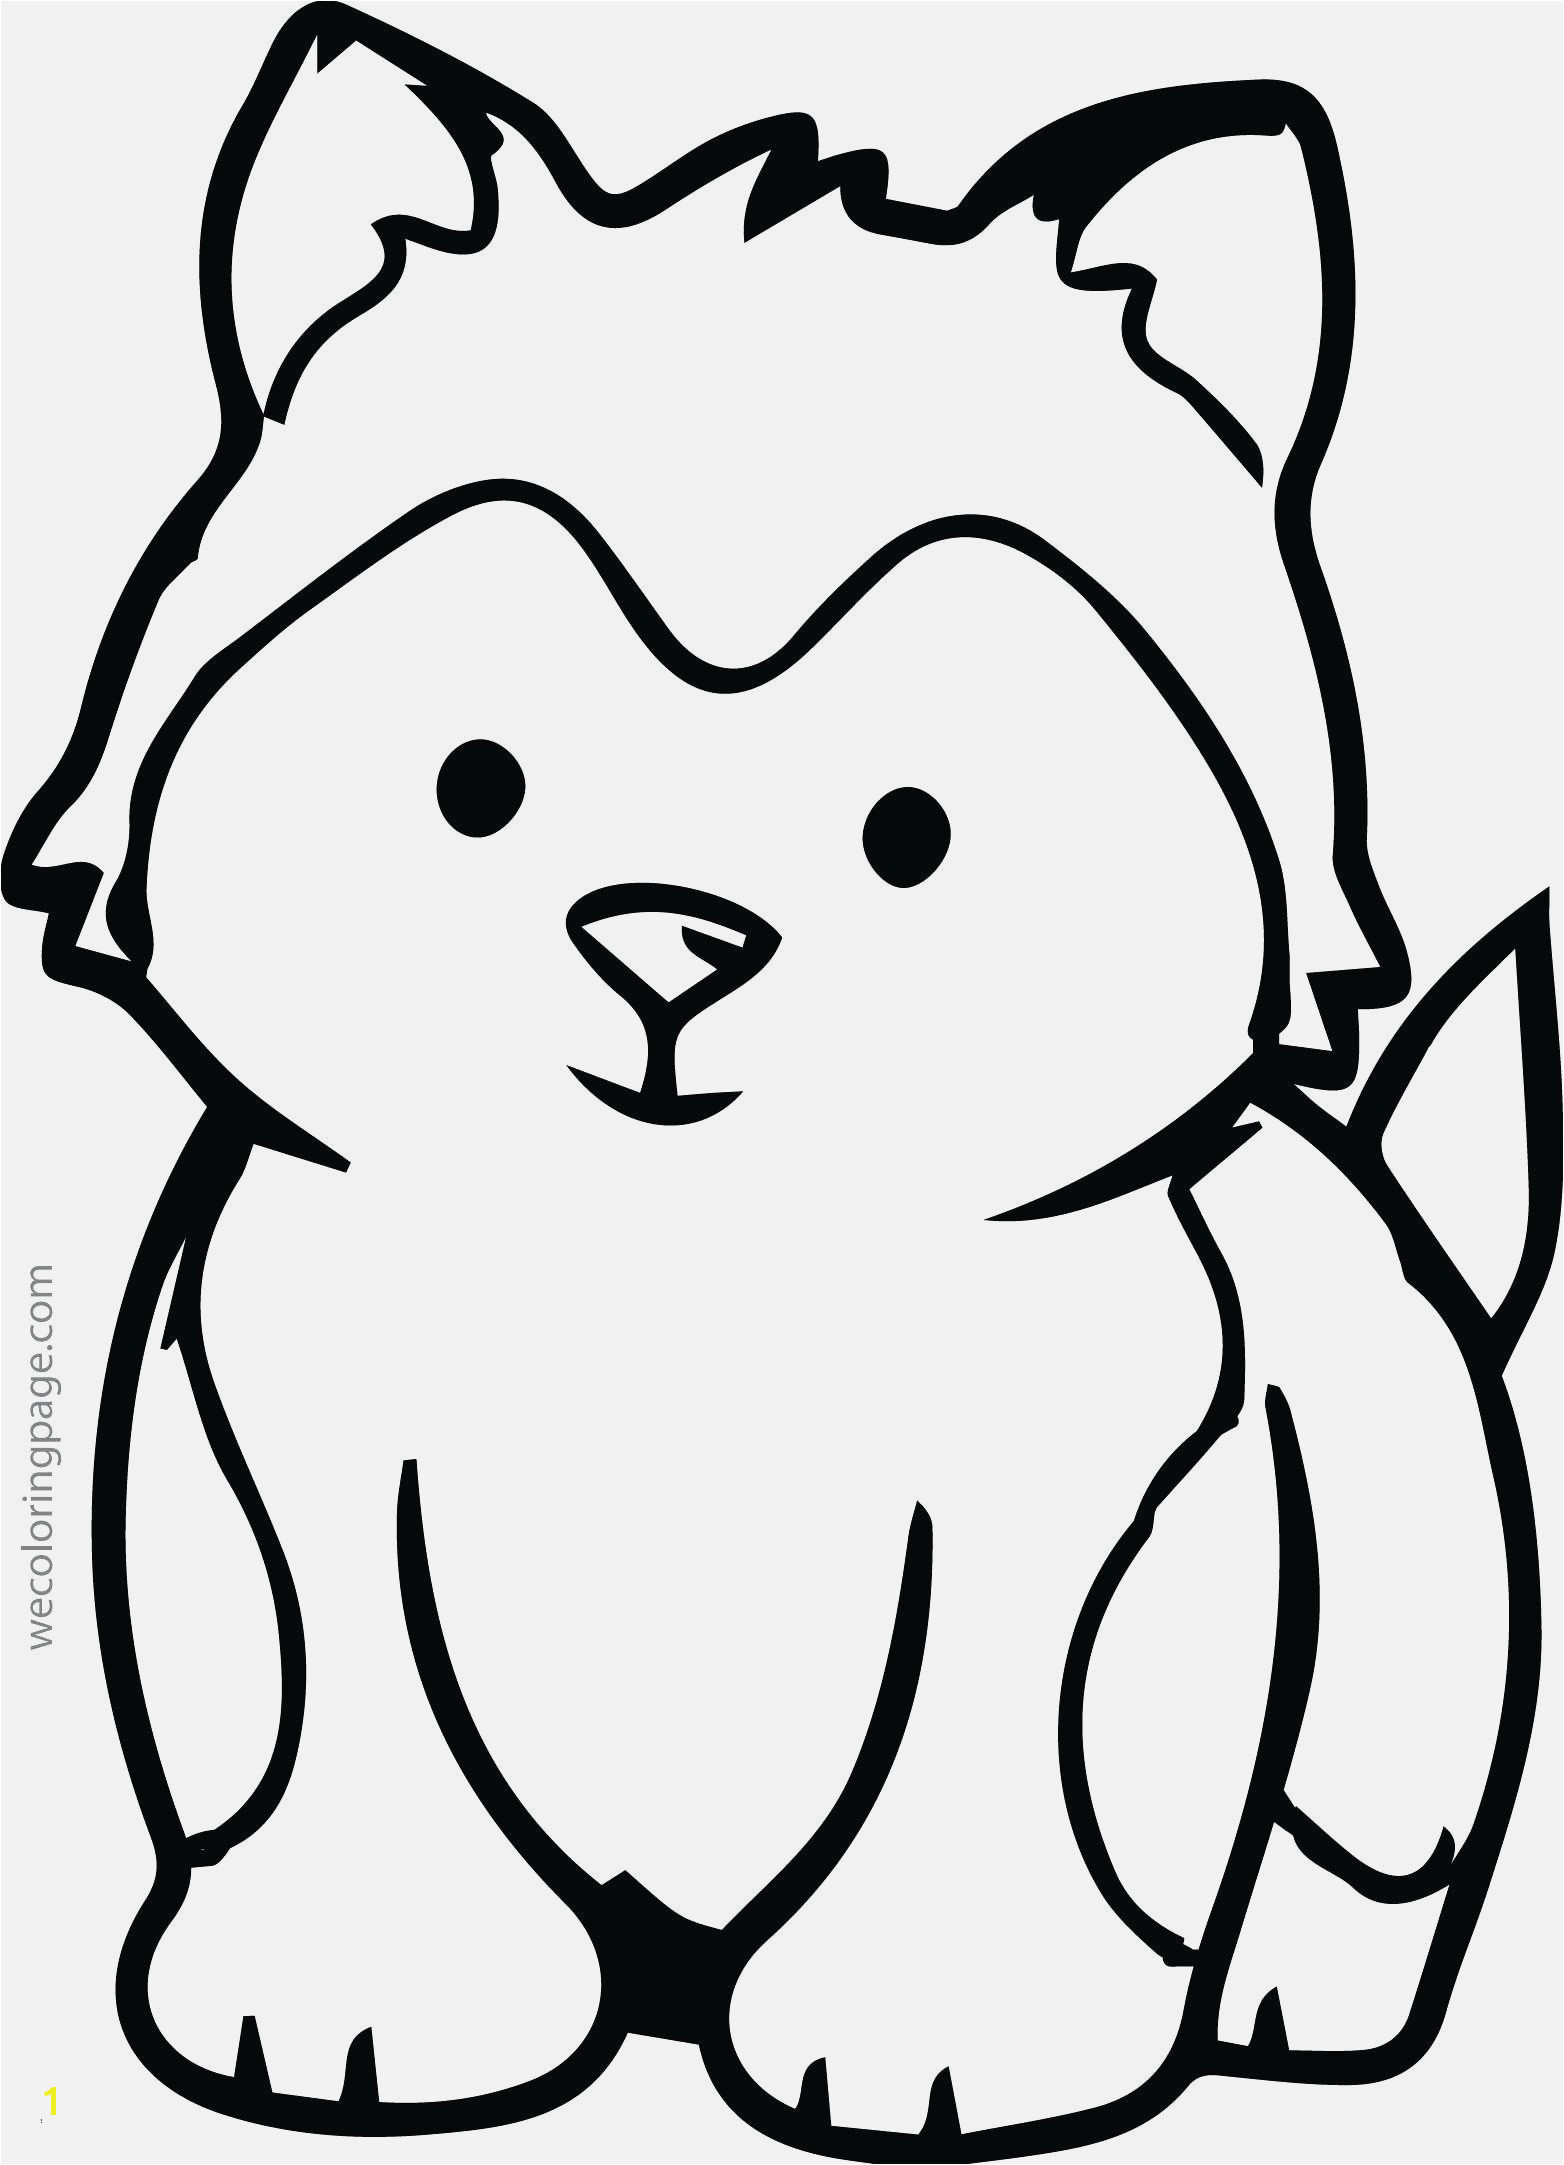 Coloring Pages Hard Free Printable 28 Inspirational Animal Coloring forstergallery Coloring Pages Hard Easy and